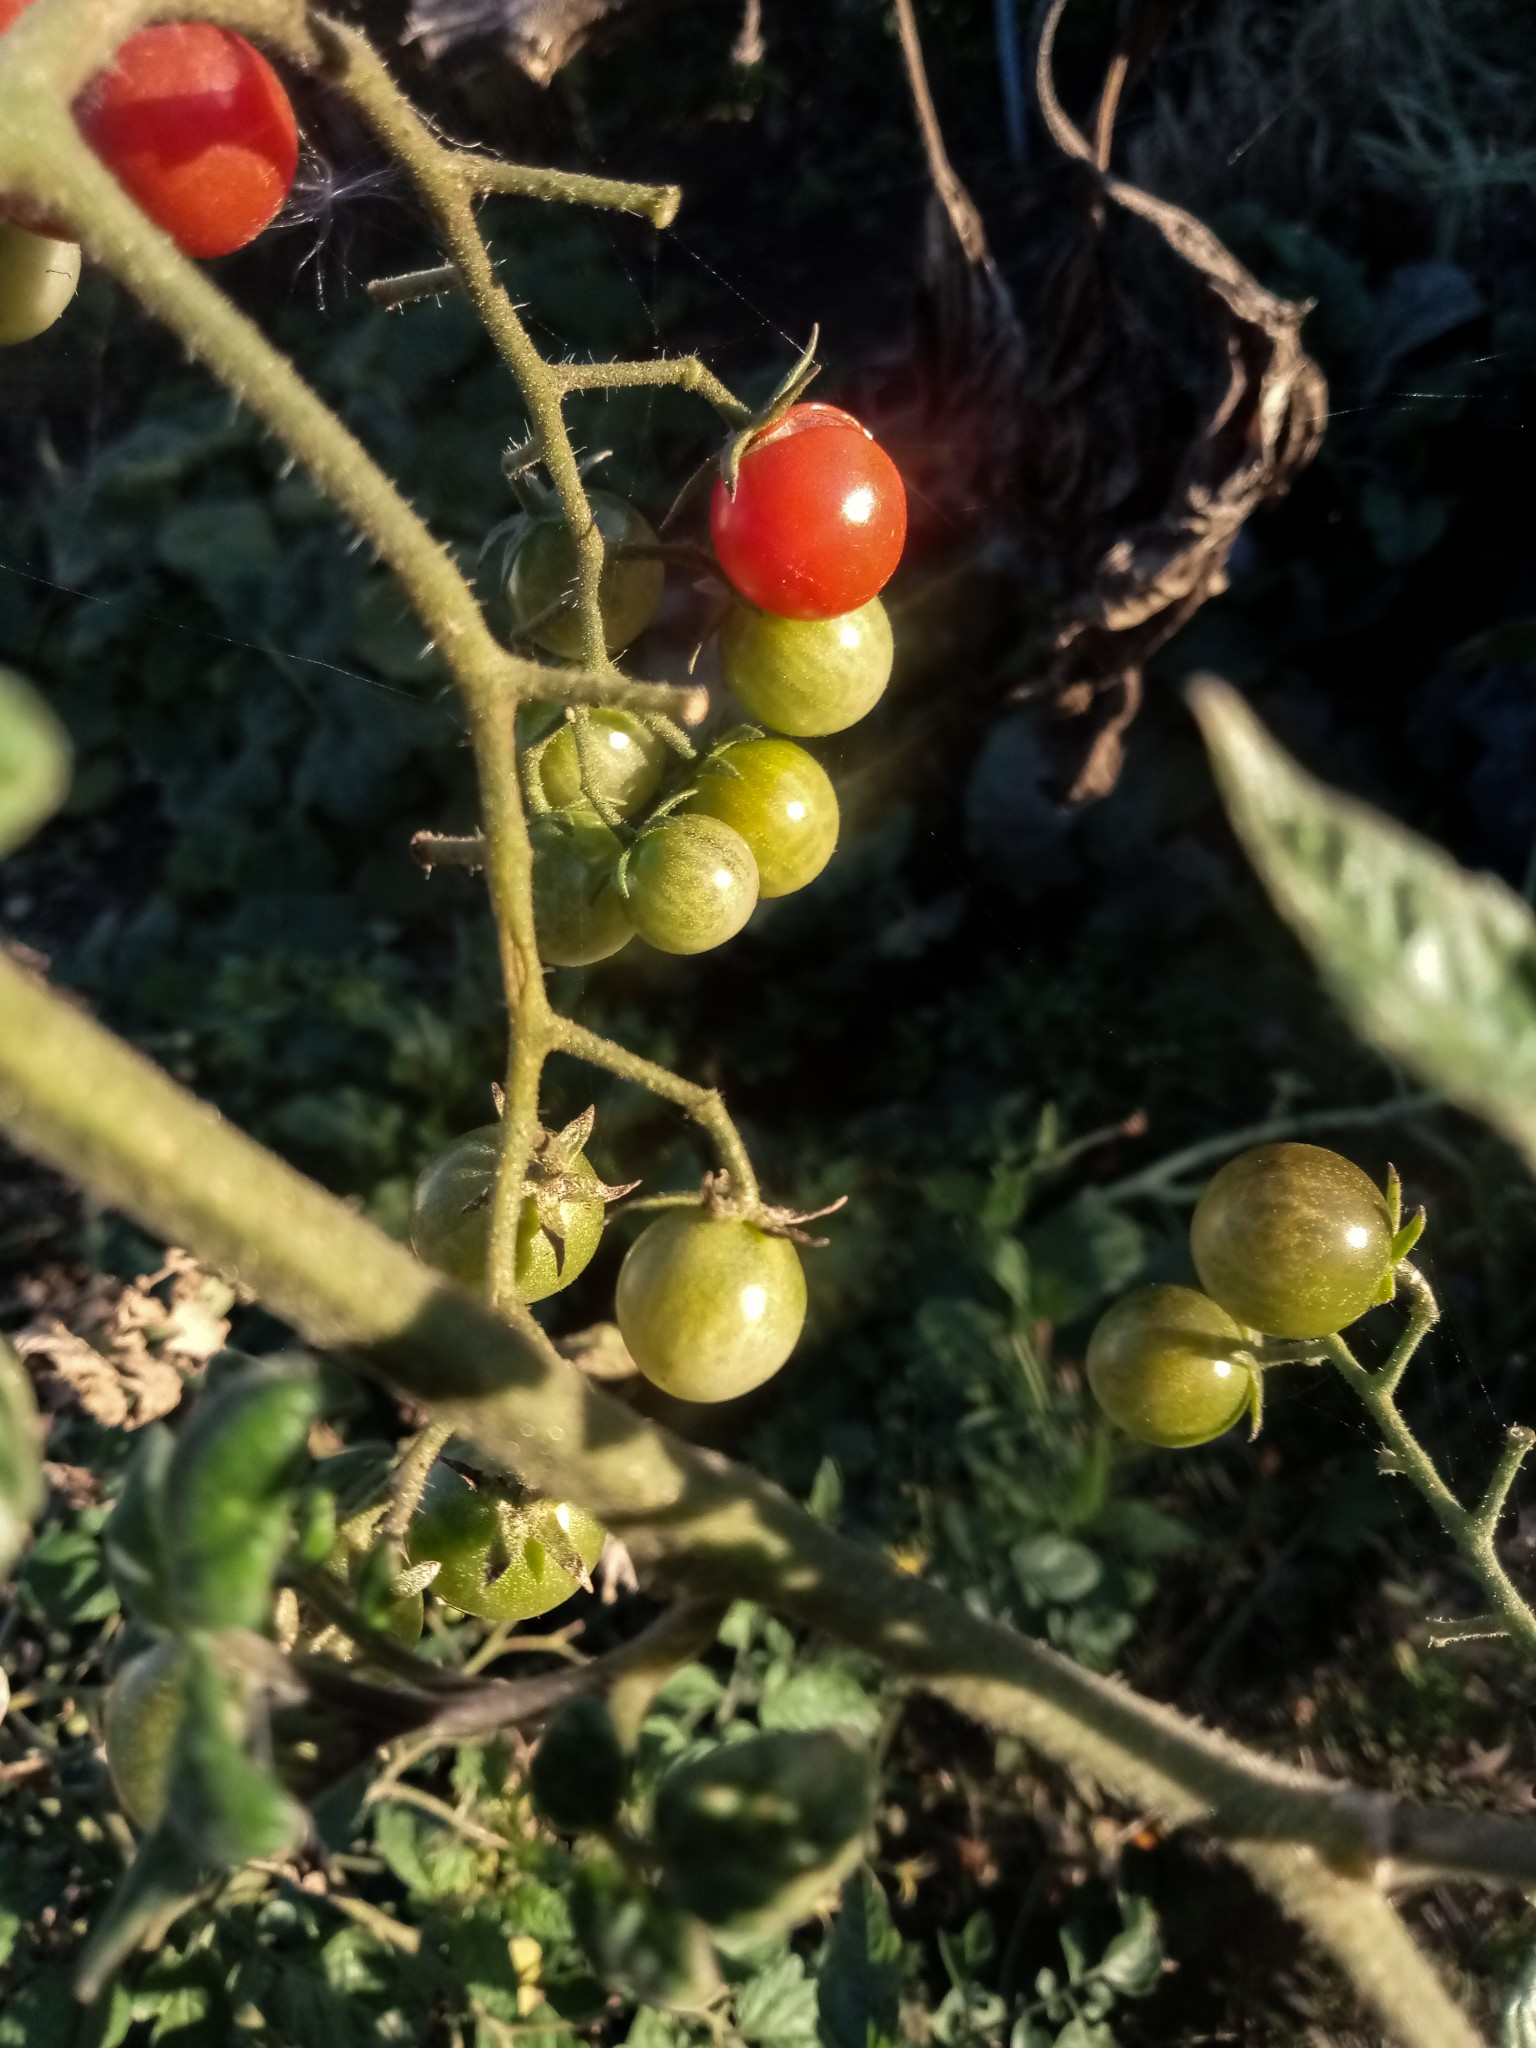 Cherry tomatoes photo 7